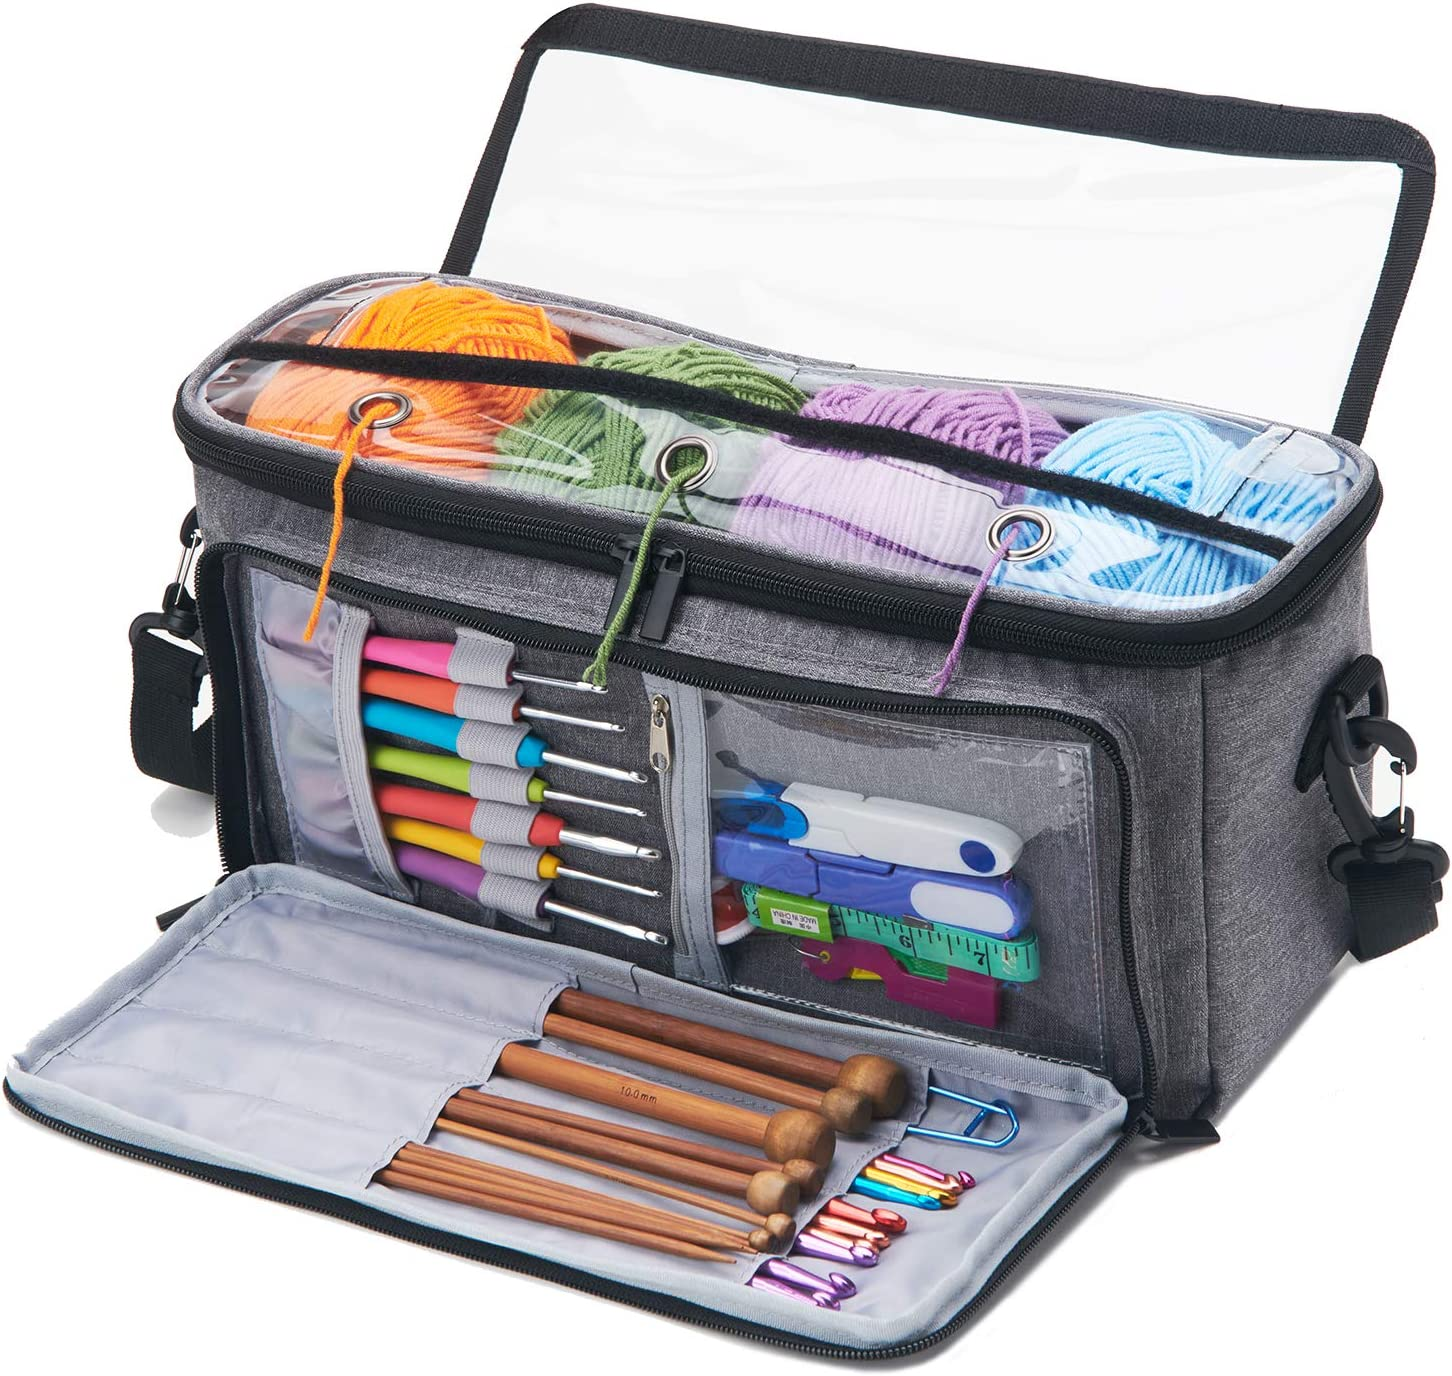 VOSDANS Yarn Large discharge sale Storage Bag Organizer with Knitting B Cheap Tote 3 Holes